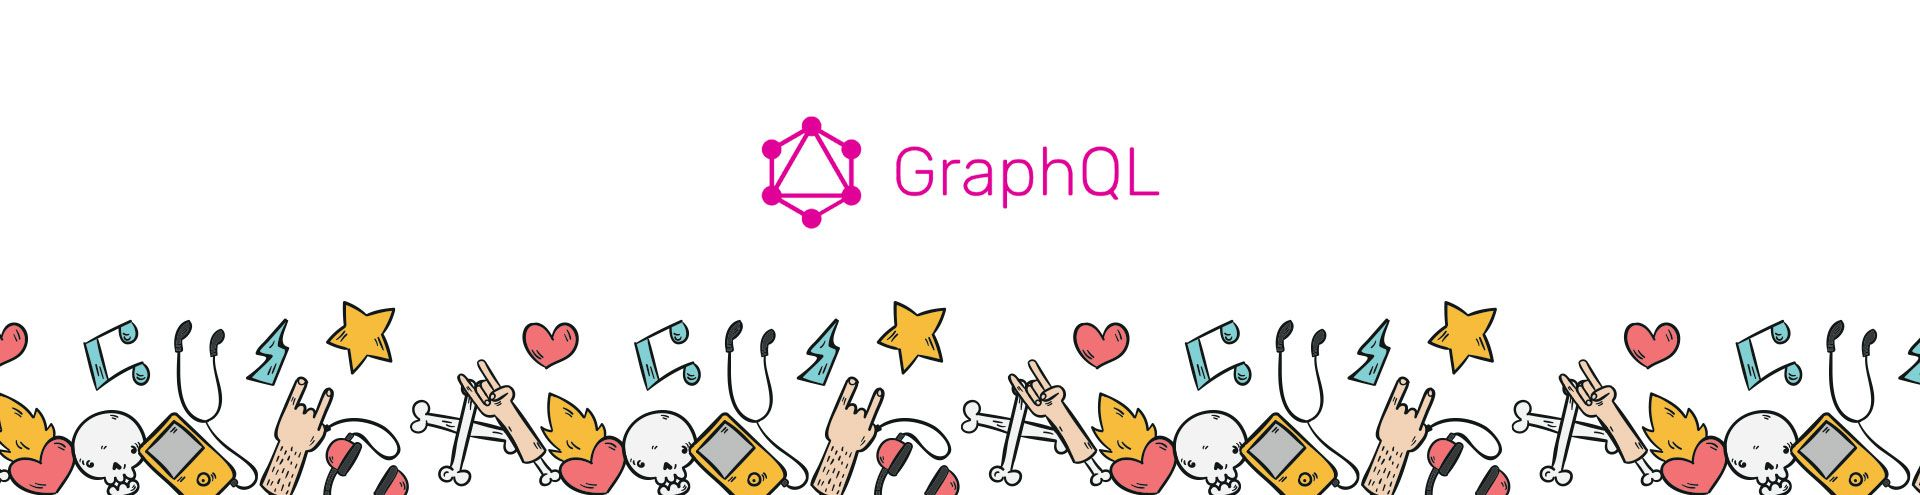 How to Build GraphQL Server For the App Like Google Play Music